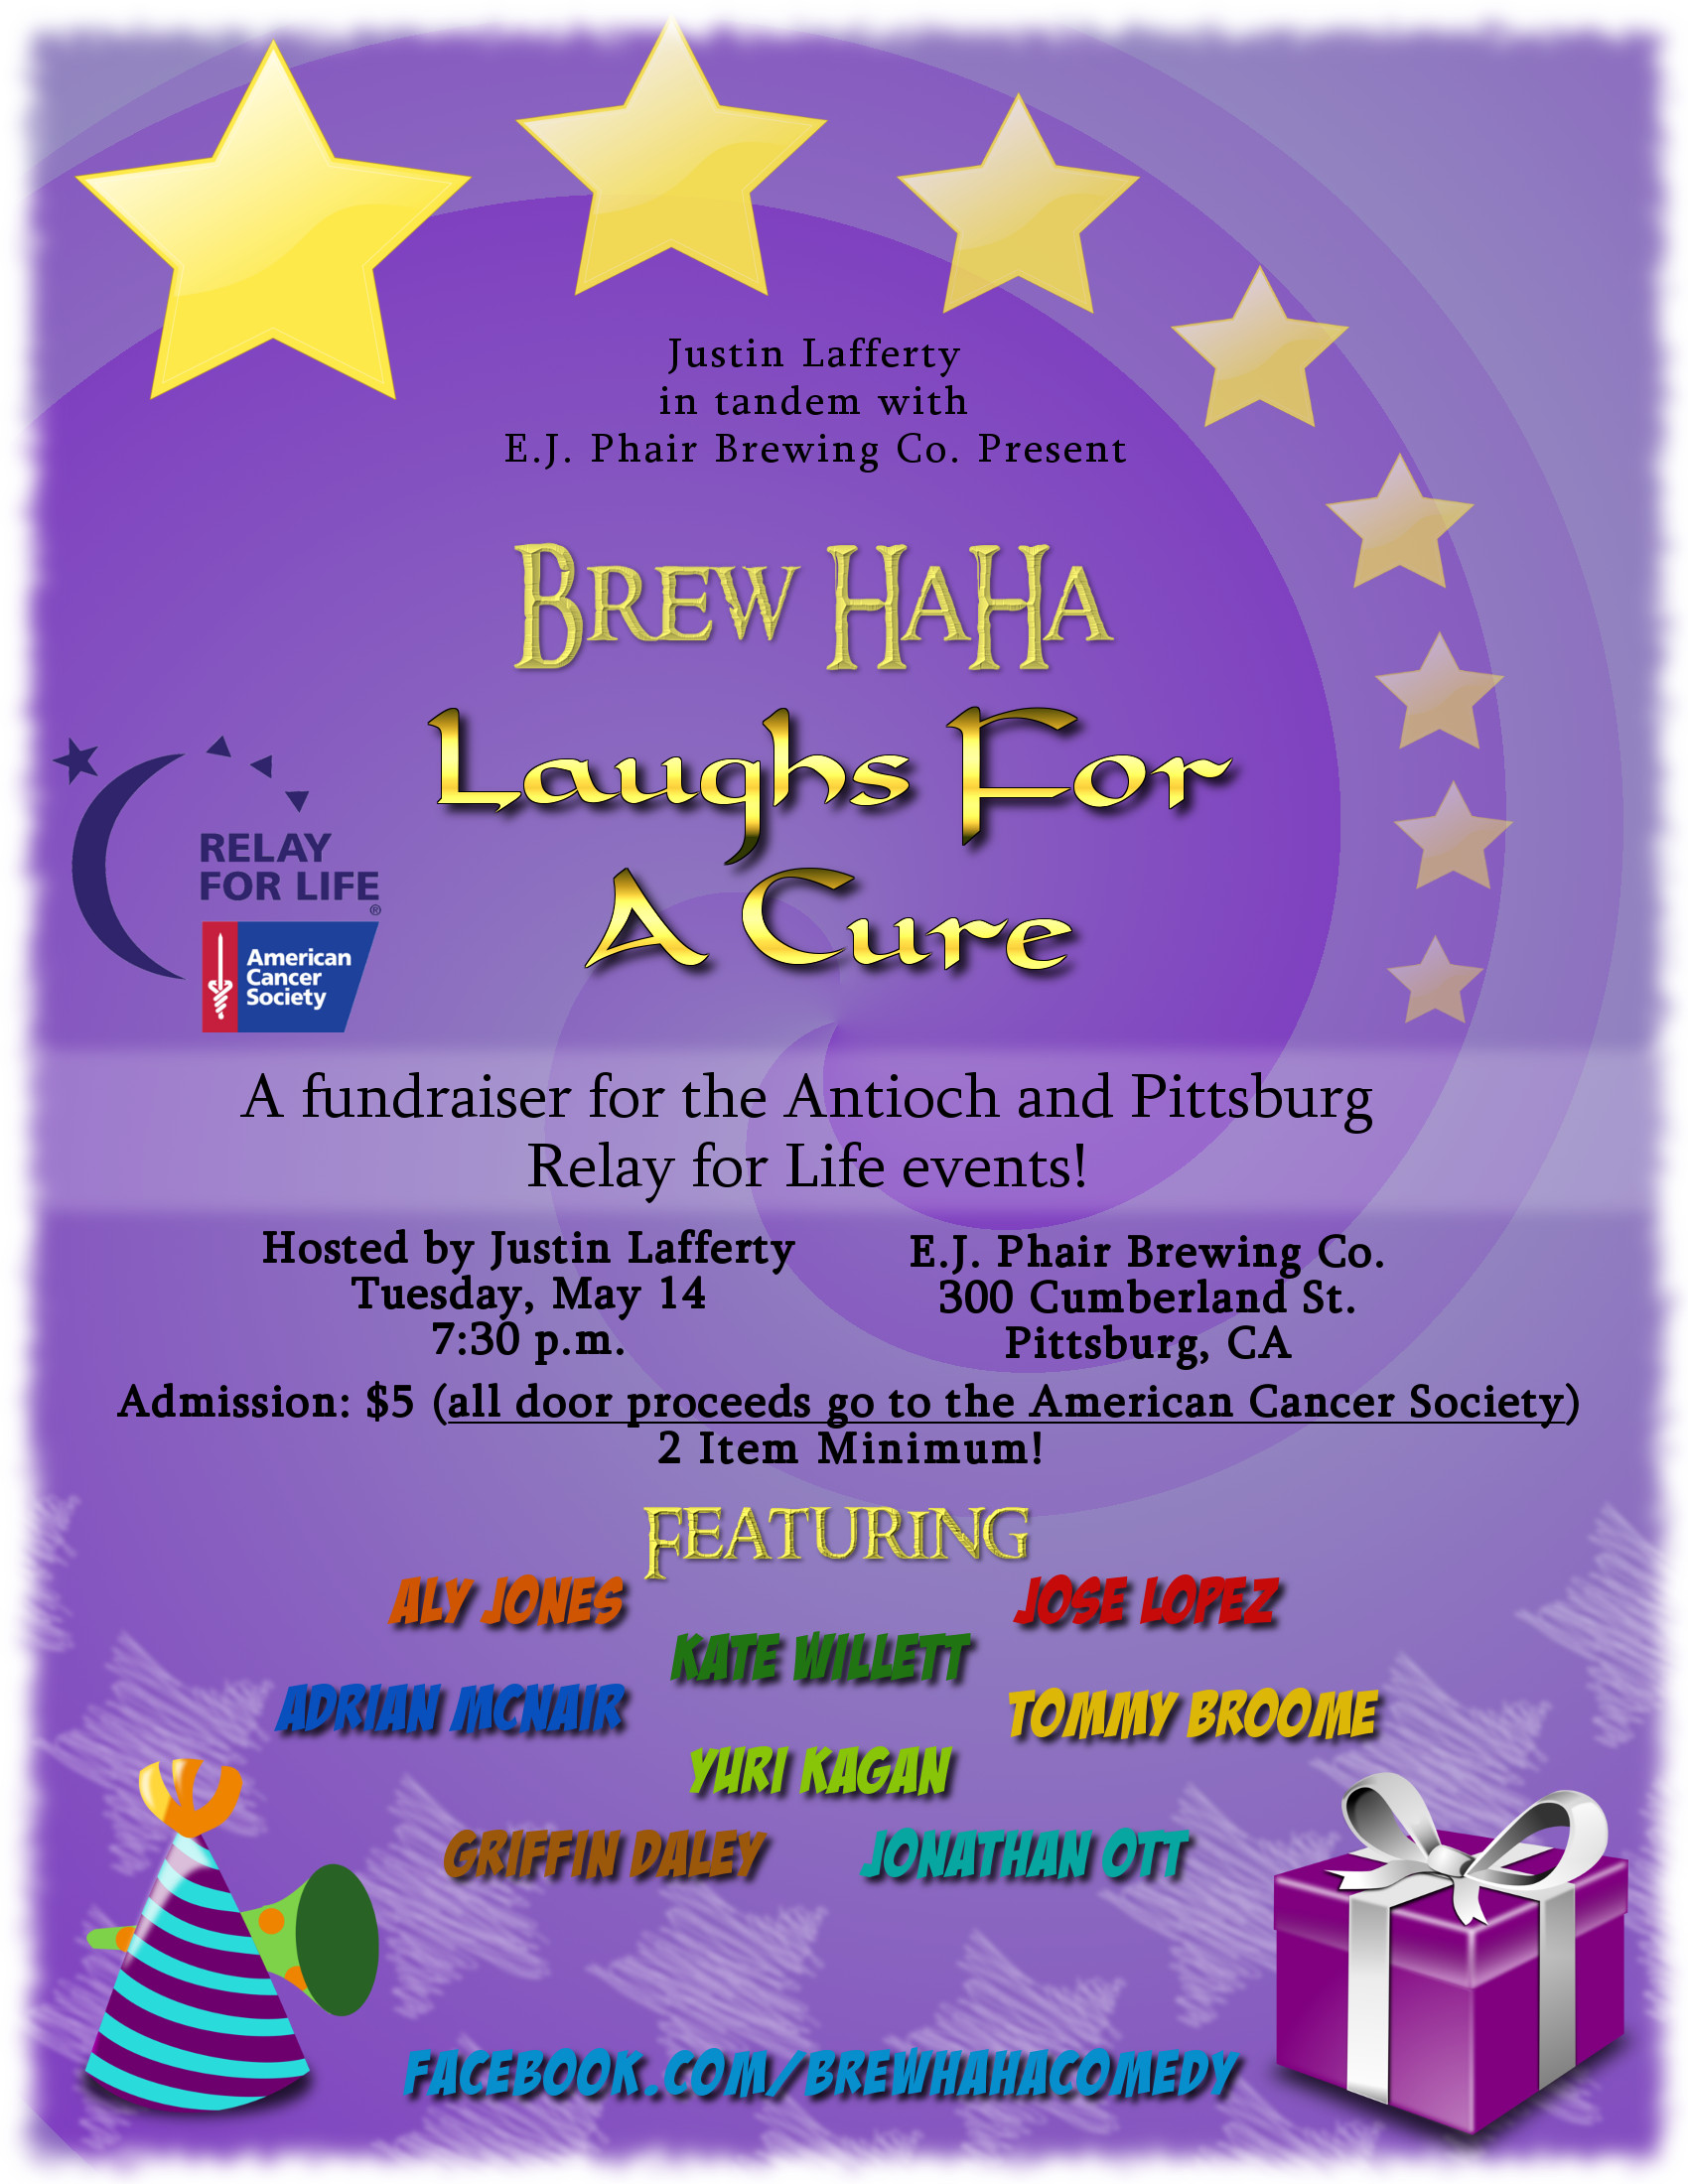 Relay for Life Comedy Show